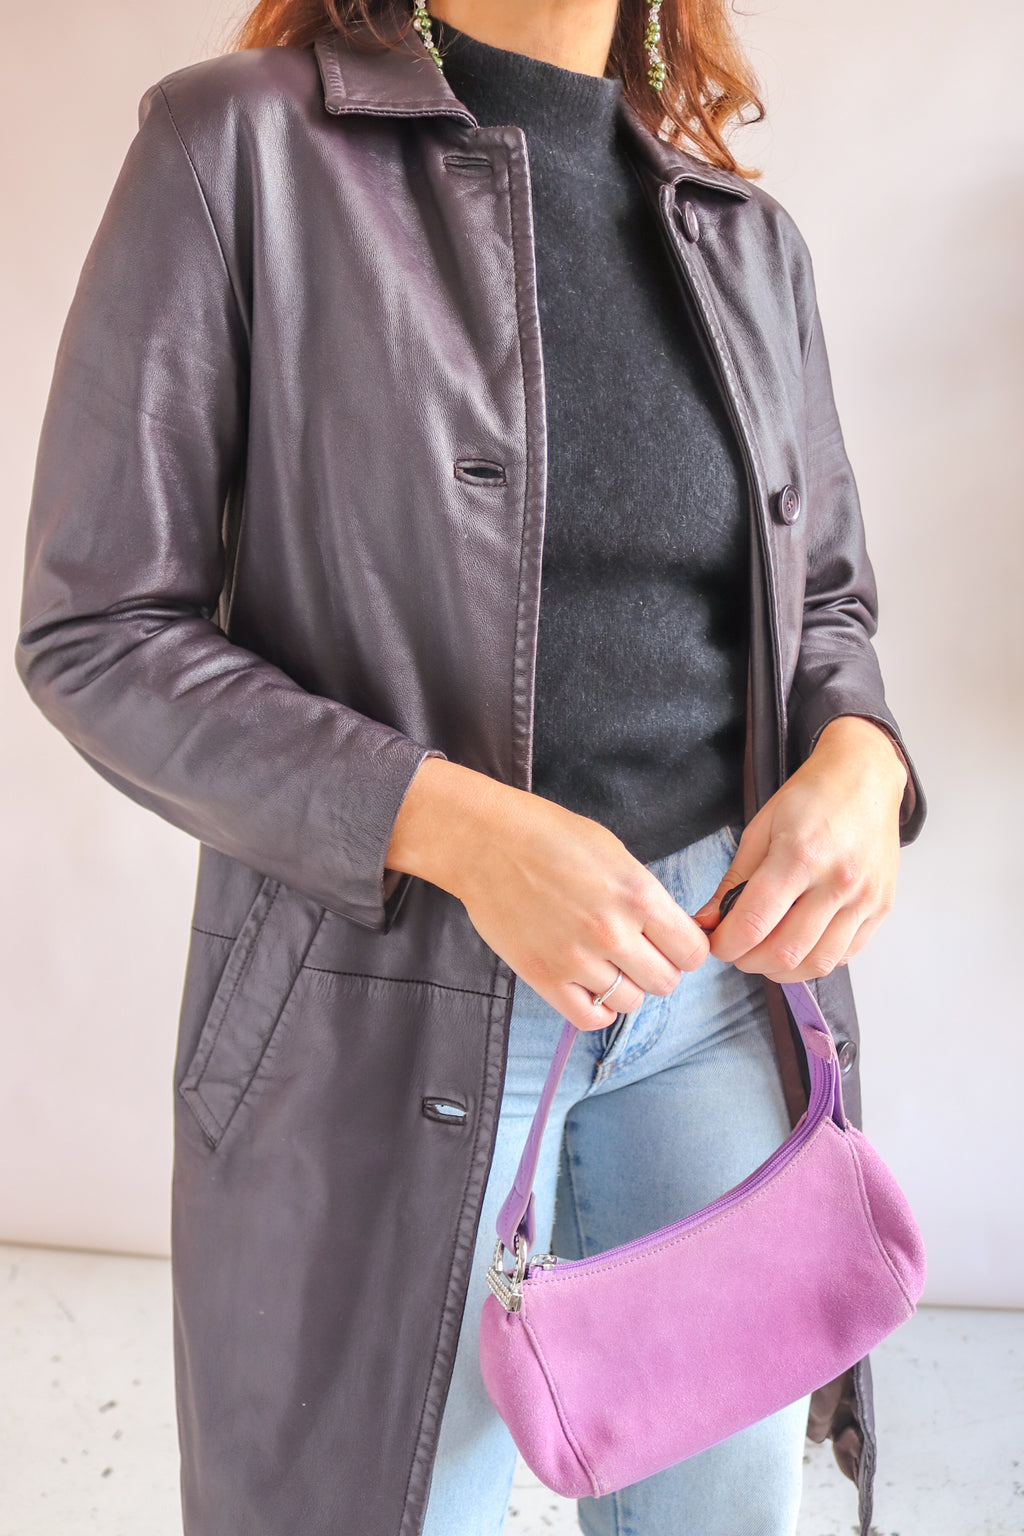 Leather Jacket in Grape - S